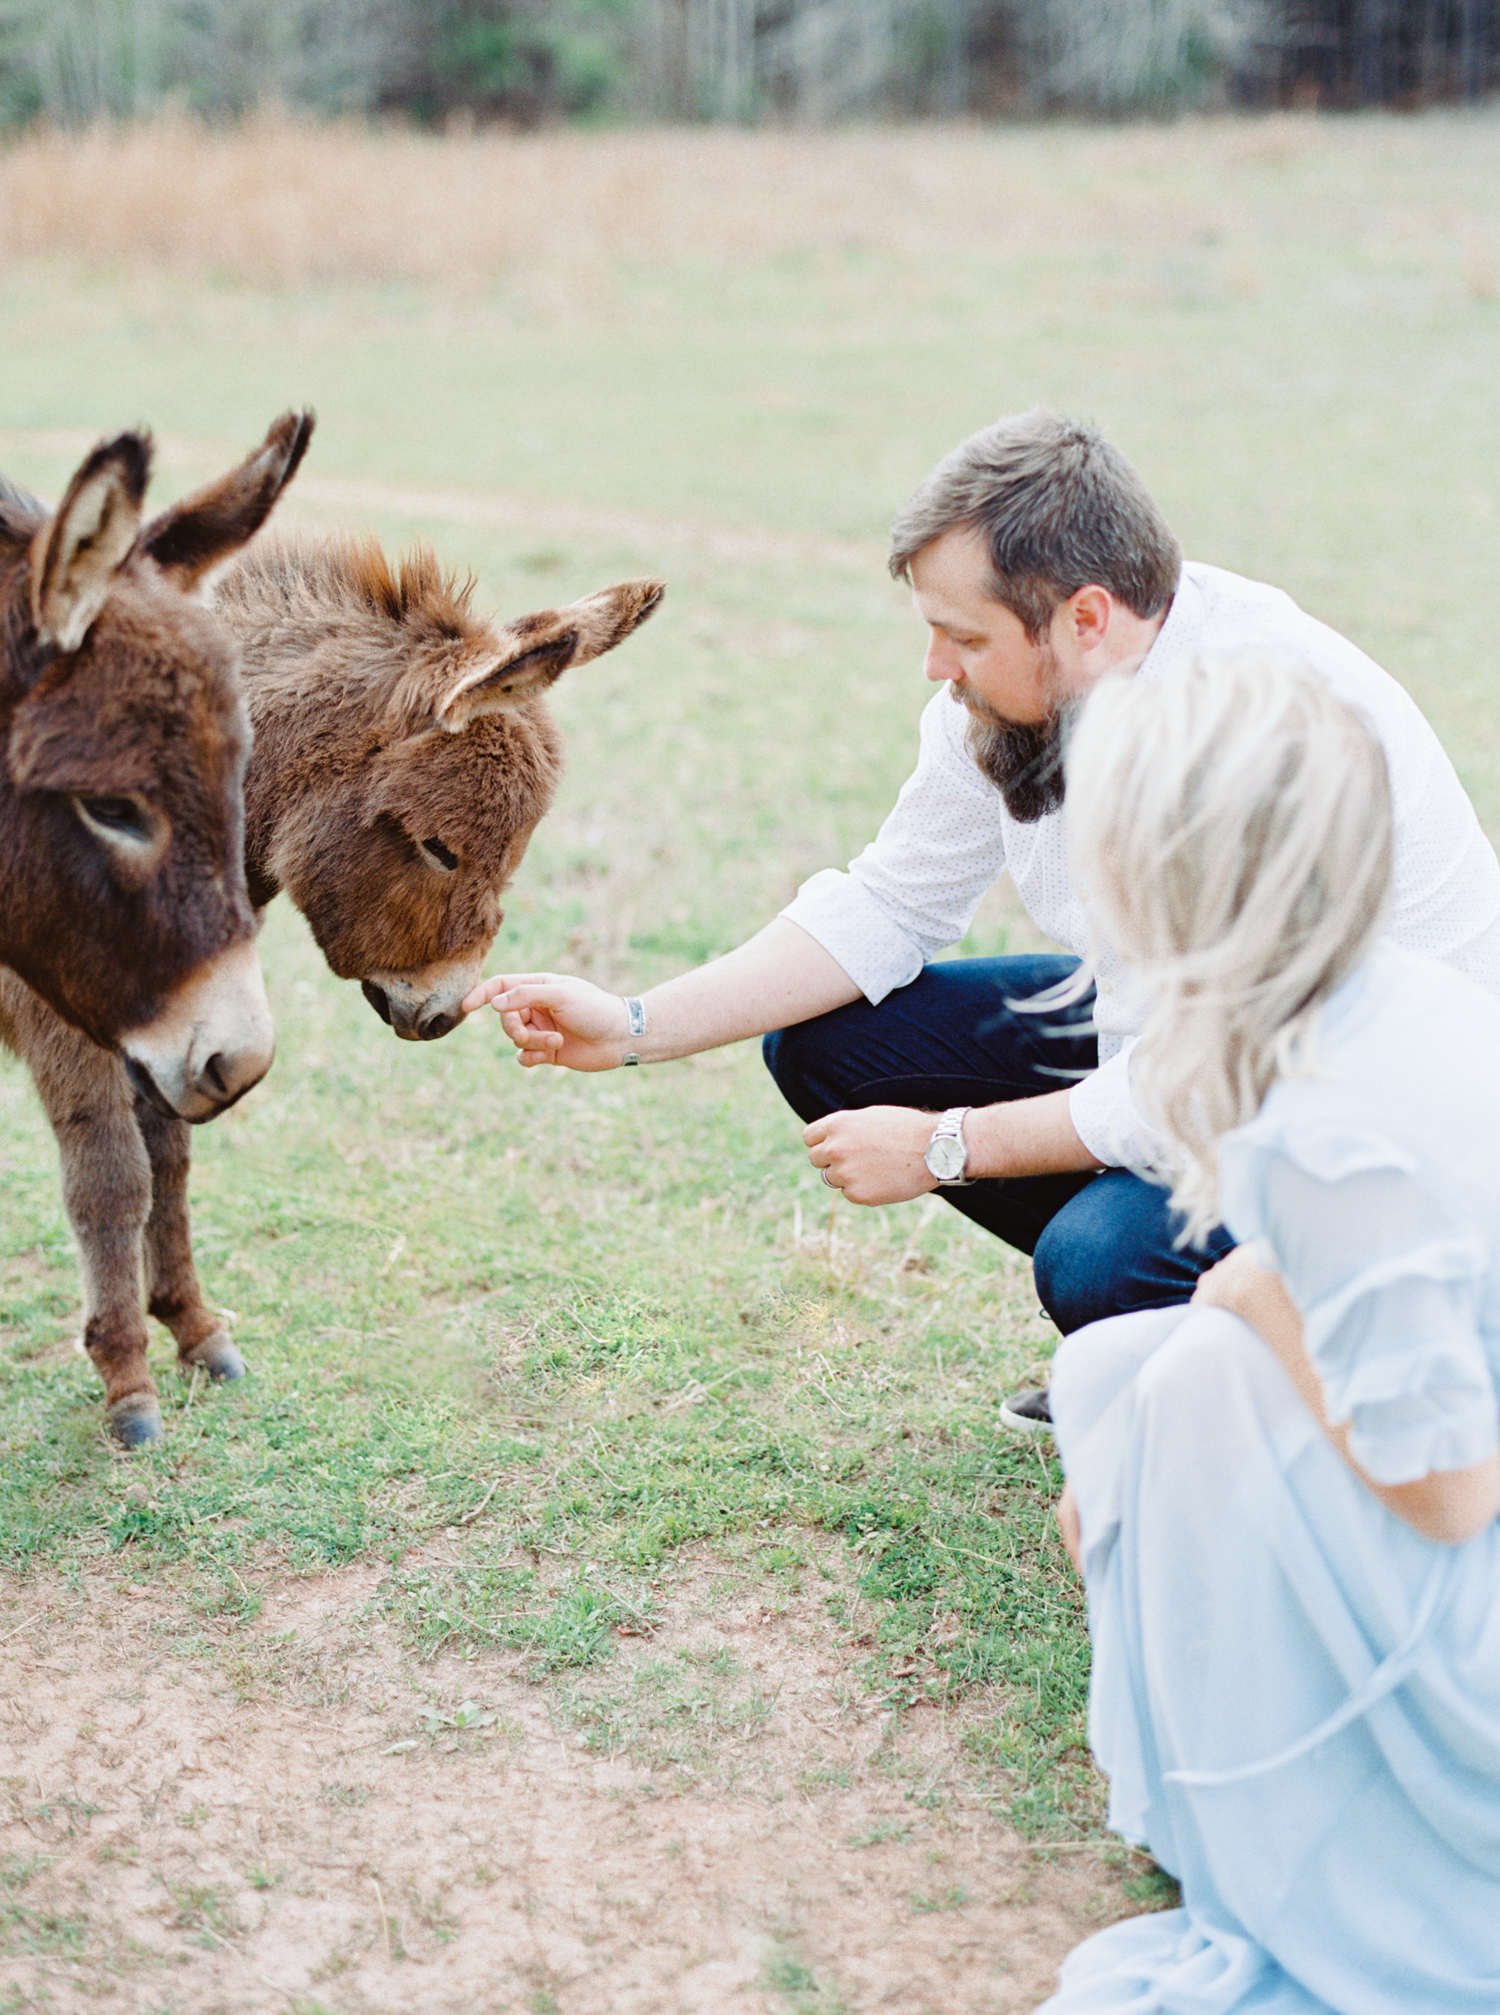 hannah forsberg atlanta wedding photographer whitney spence anniversary session with miniature donkeys and horse-10.jpg